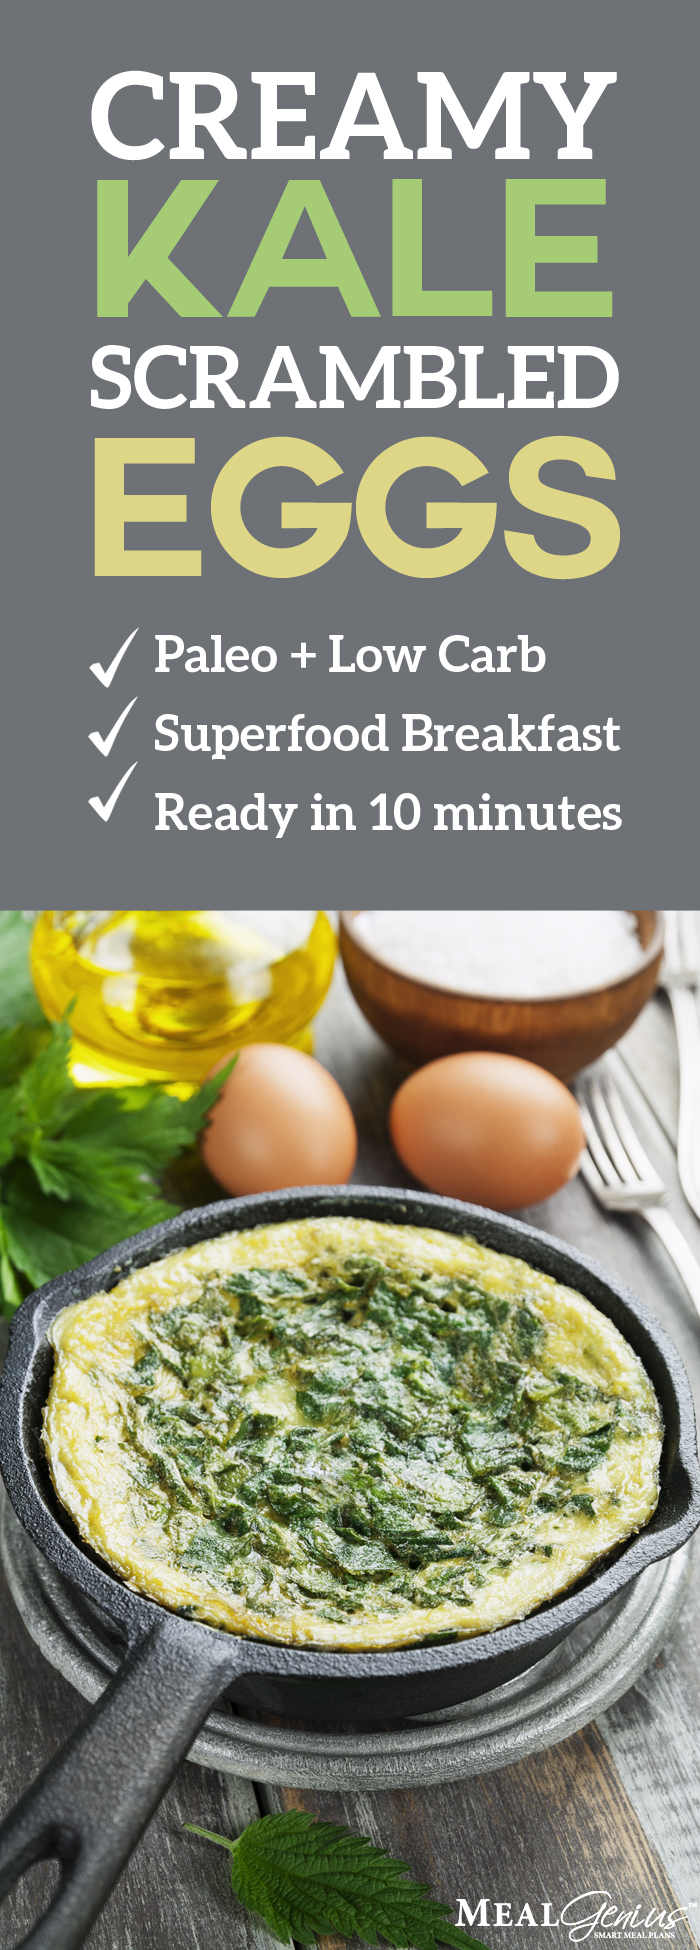 Creamy Kale Scrambled Eggs - Meal Genius